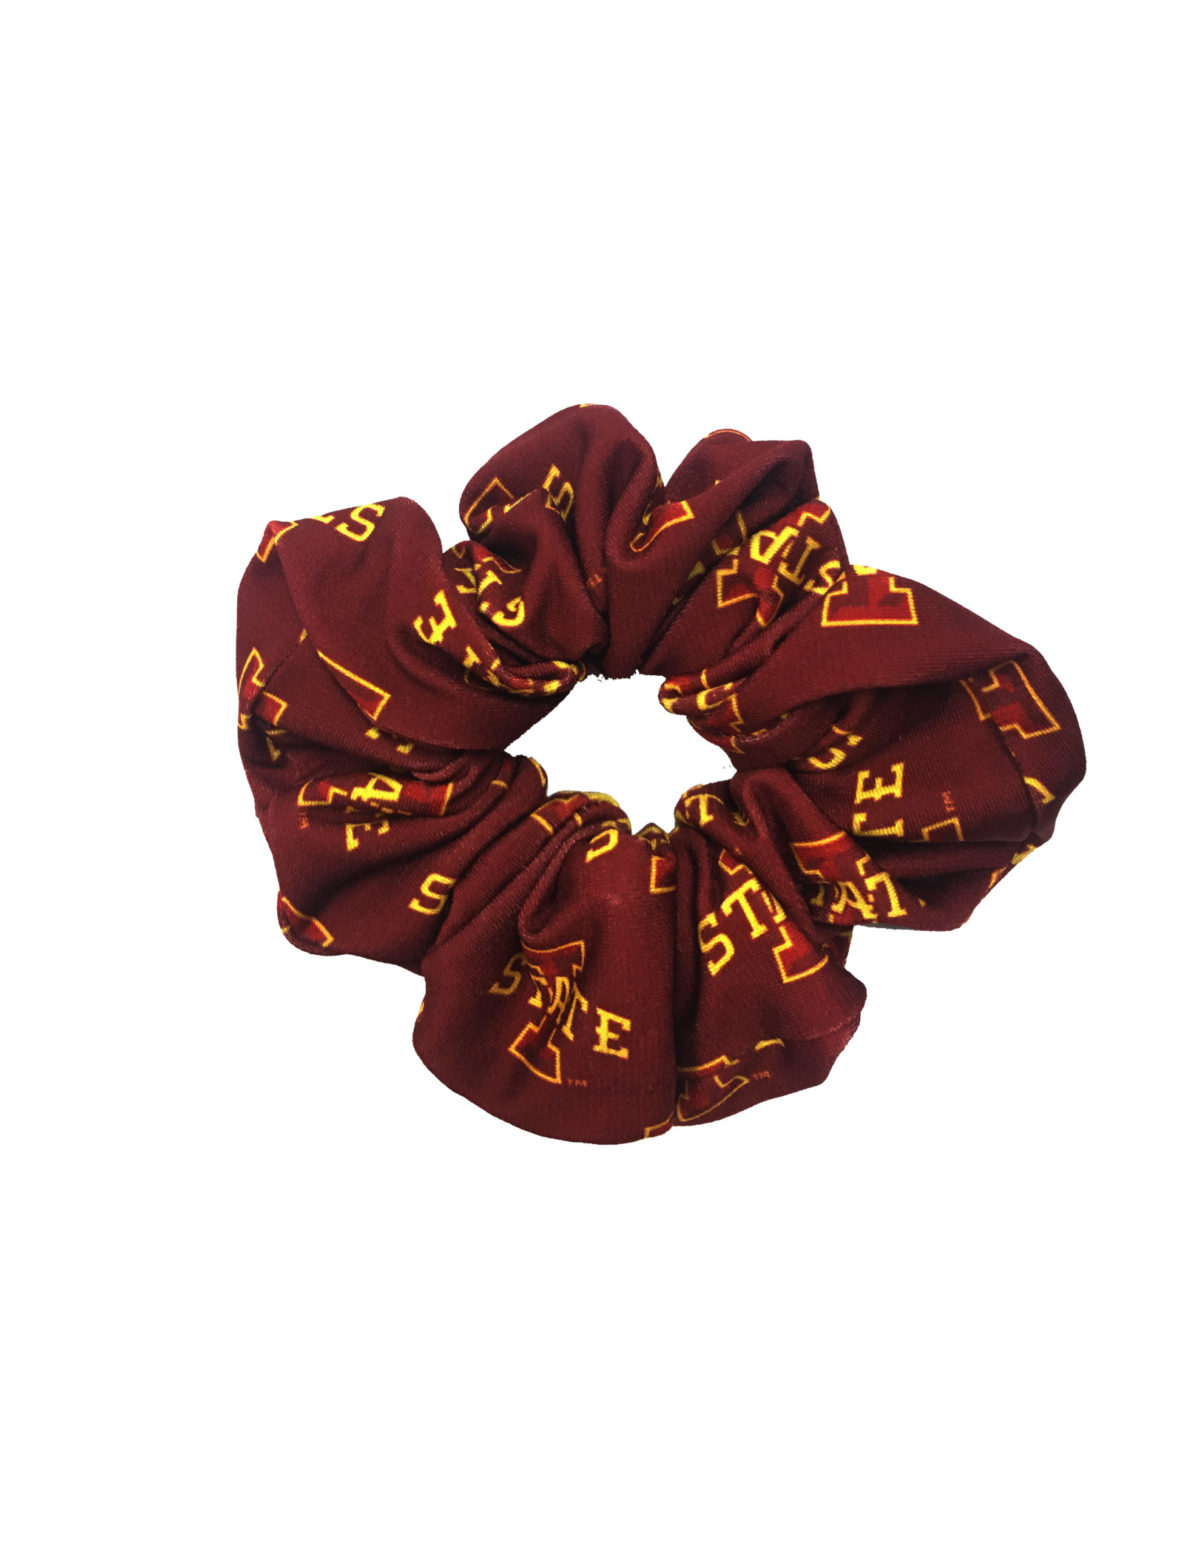 ISU Iowa State hair scrunchie Barefoot Campus Outfitter